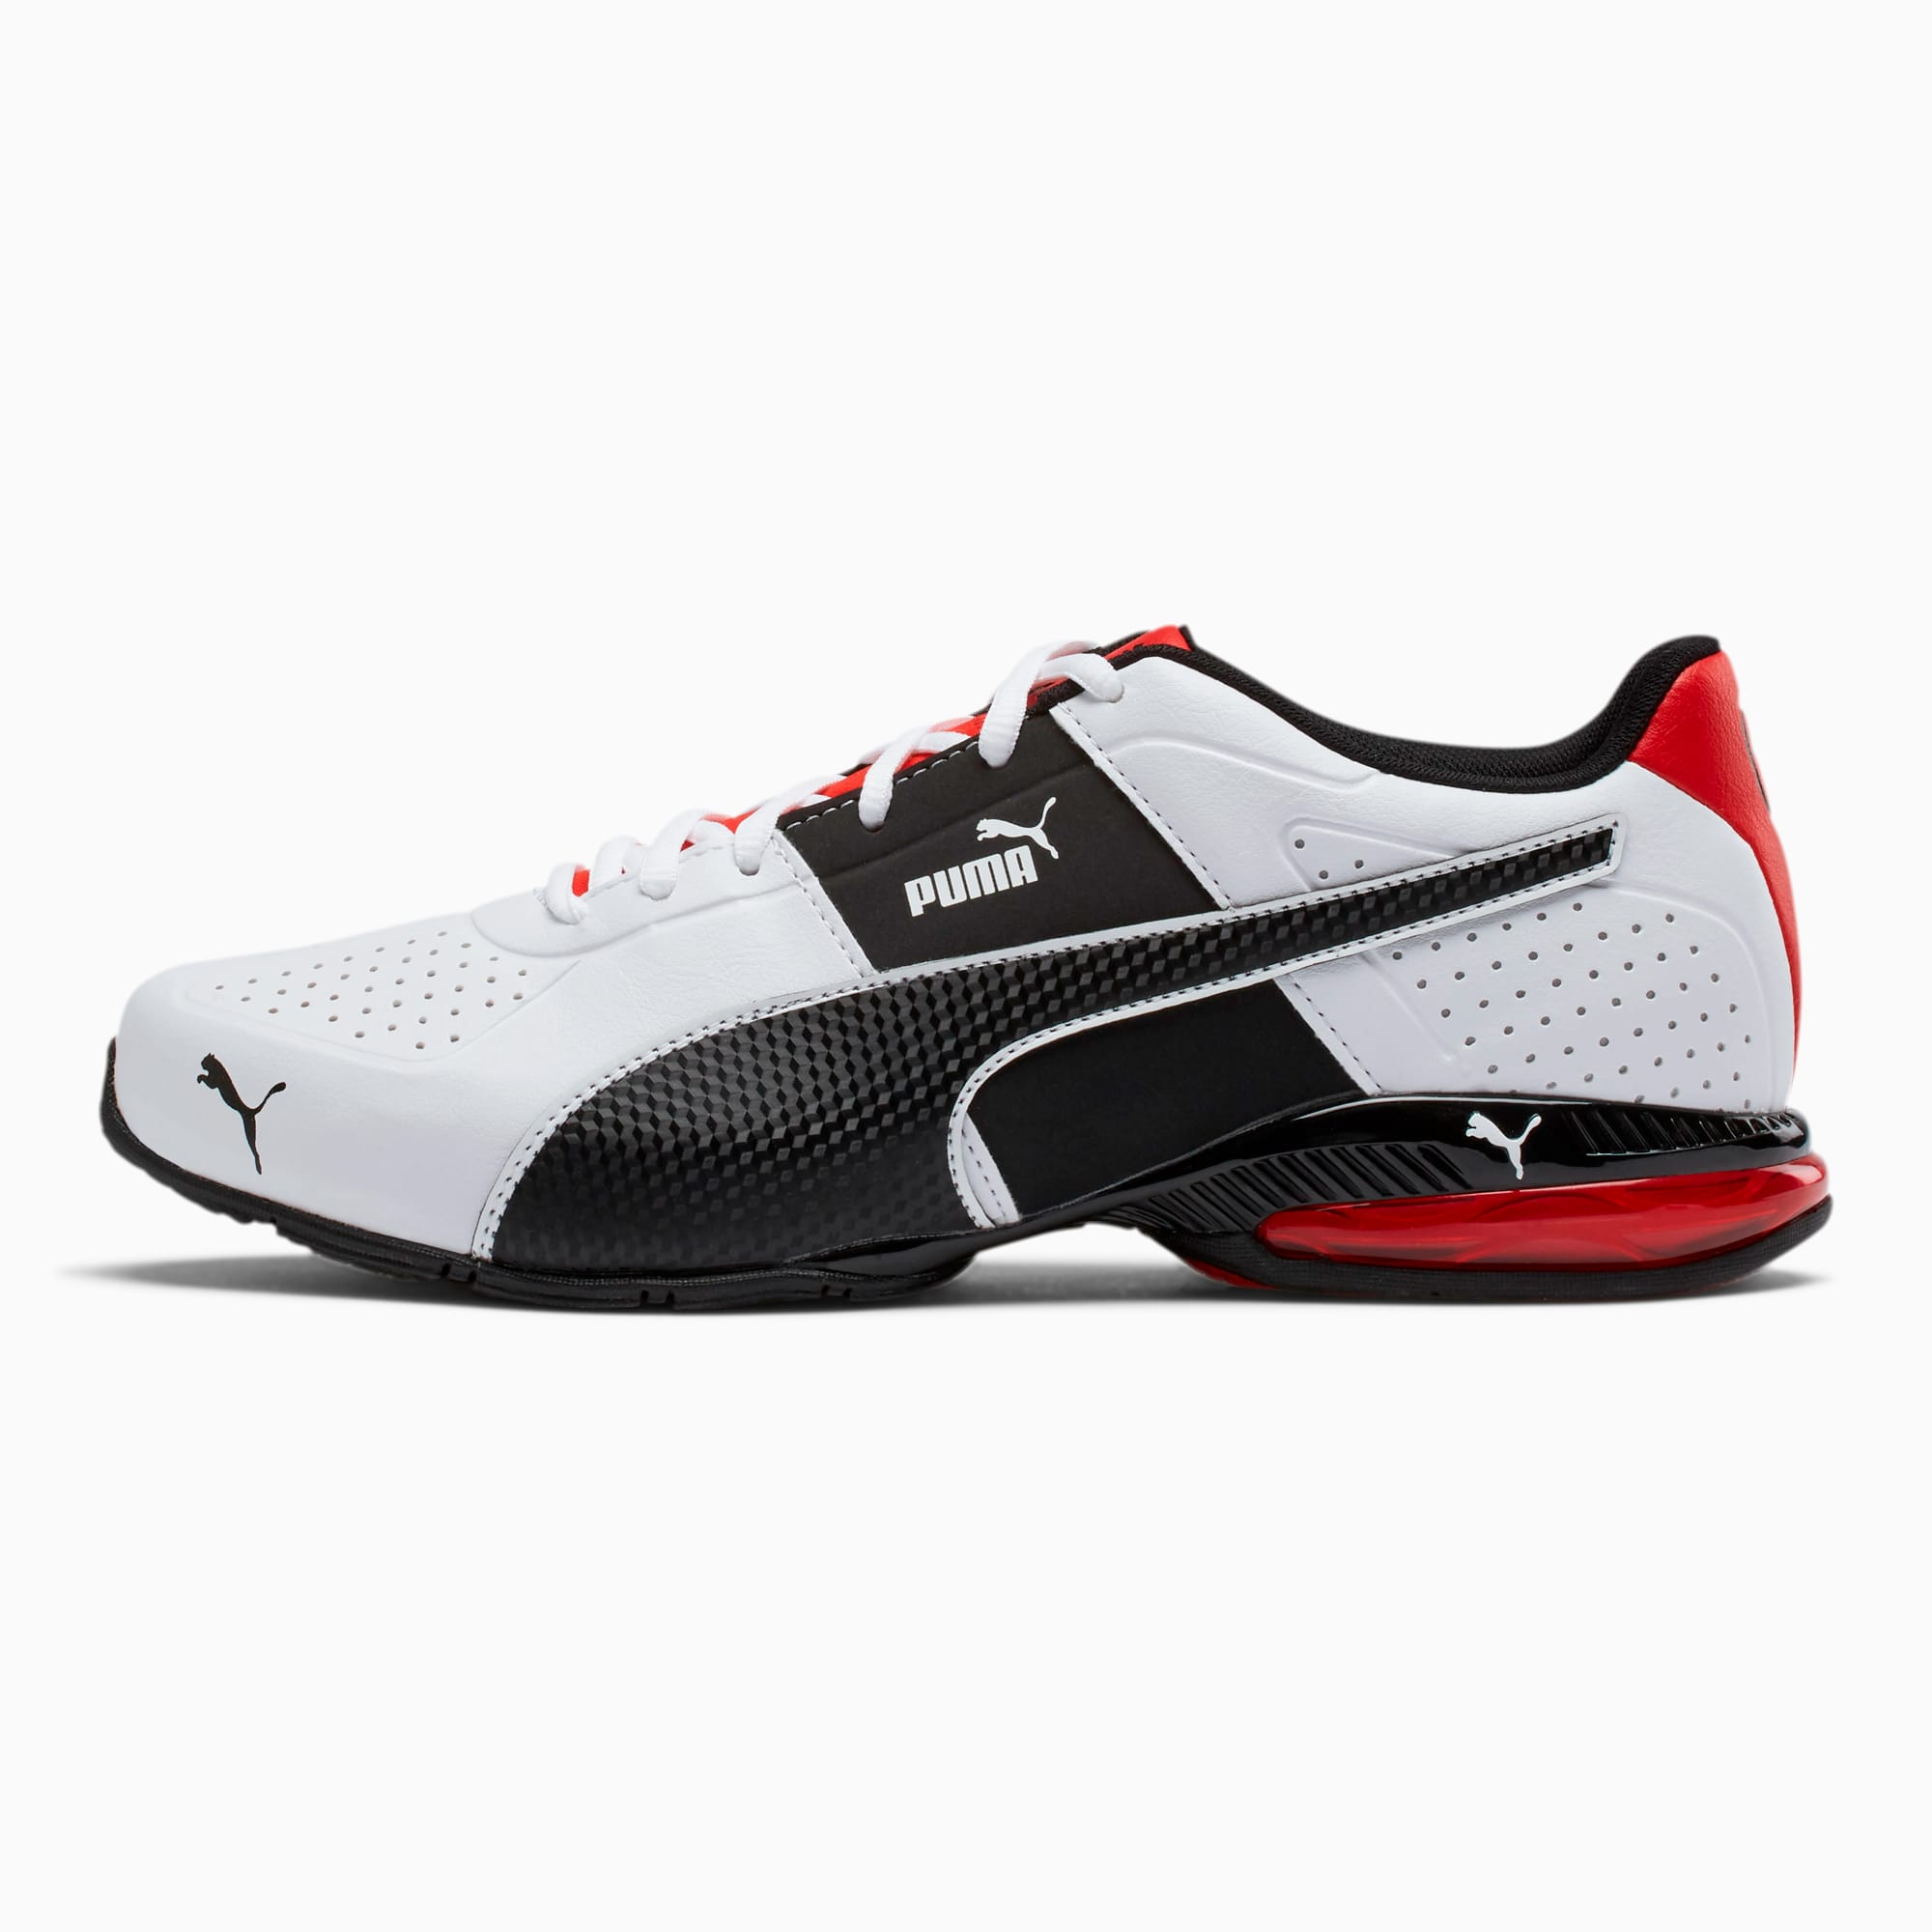 CELL Surin 2 FM Men's Running Shoes